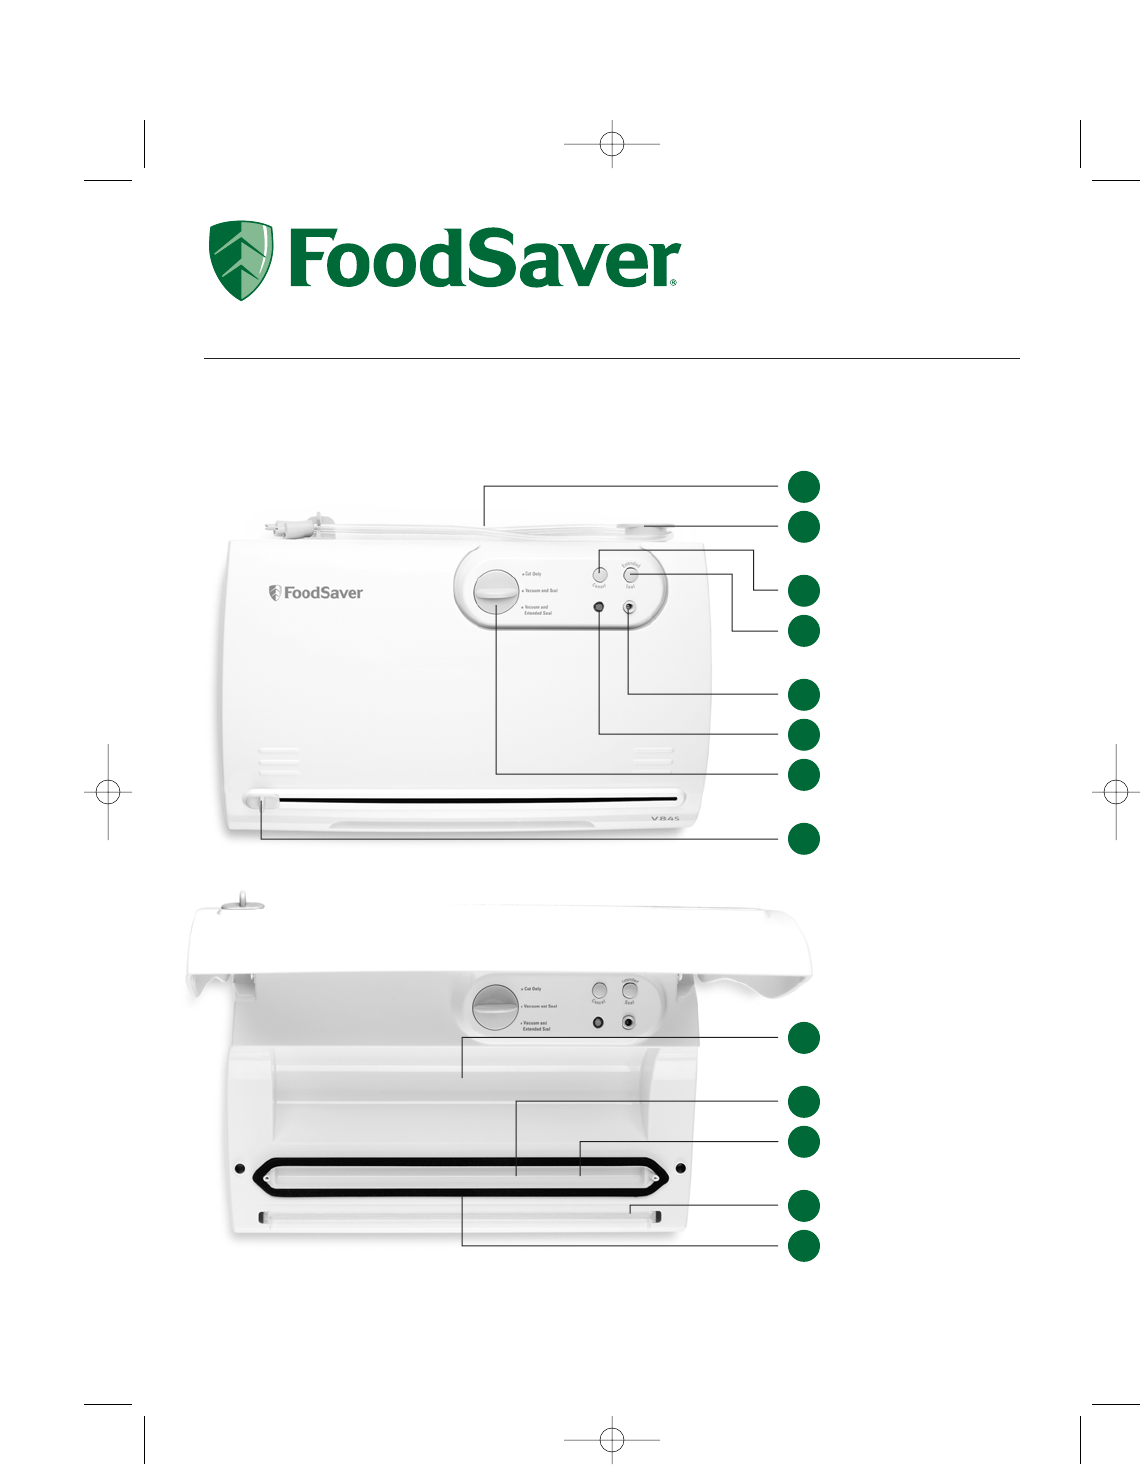 foodsaver food saver v845 user guide manualsonline com rh kitchen manualsonline com Kenmore Dryer Kenmore Elite Washer